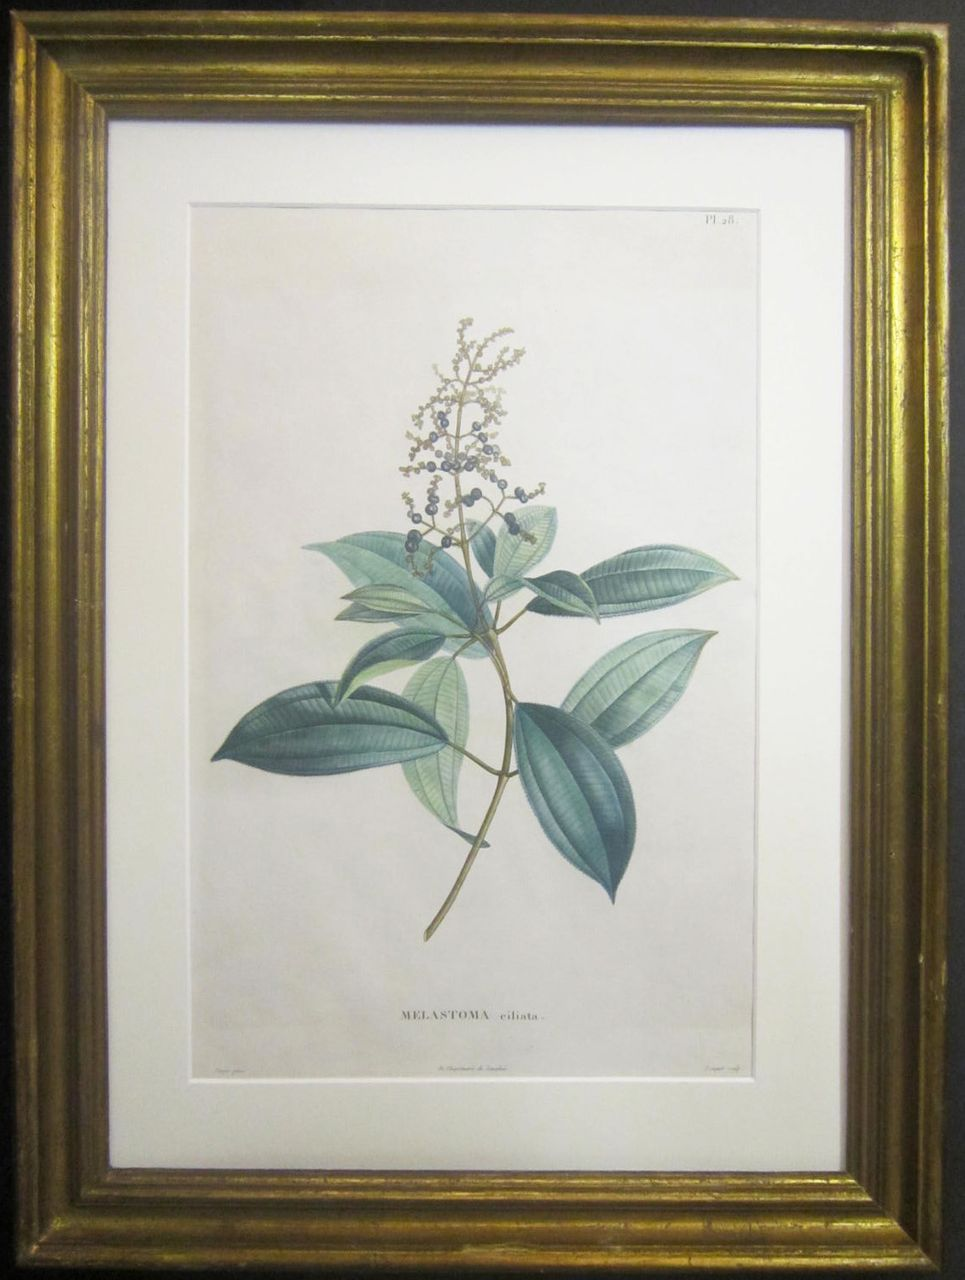 19th Century French Botanical Engraving Printed by Langlois